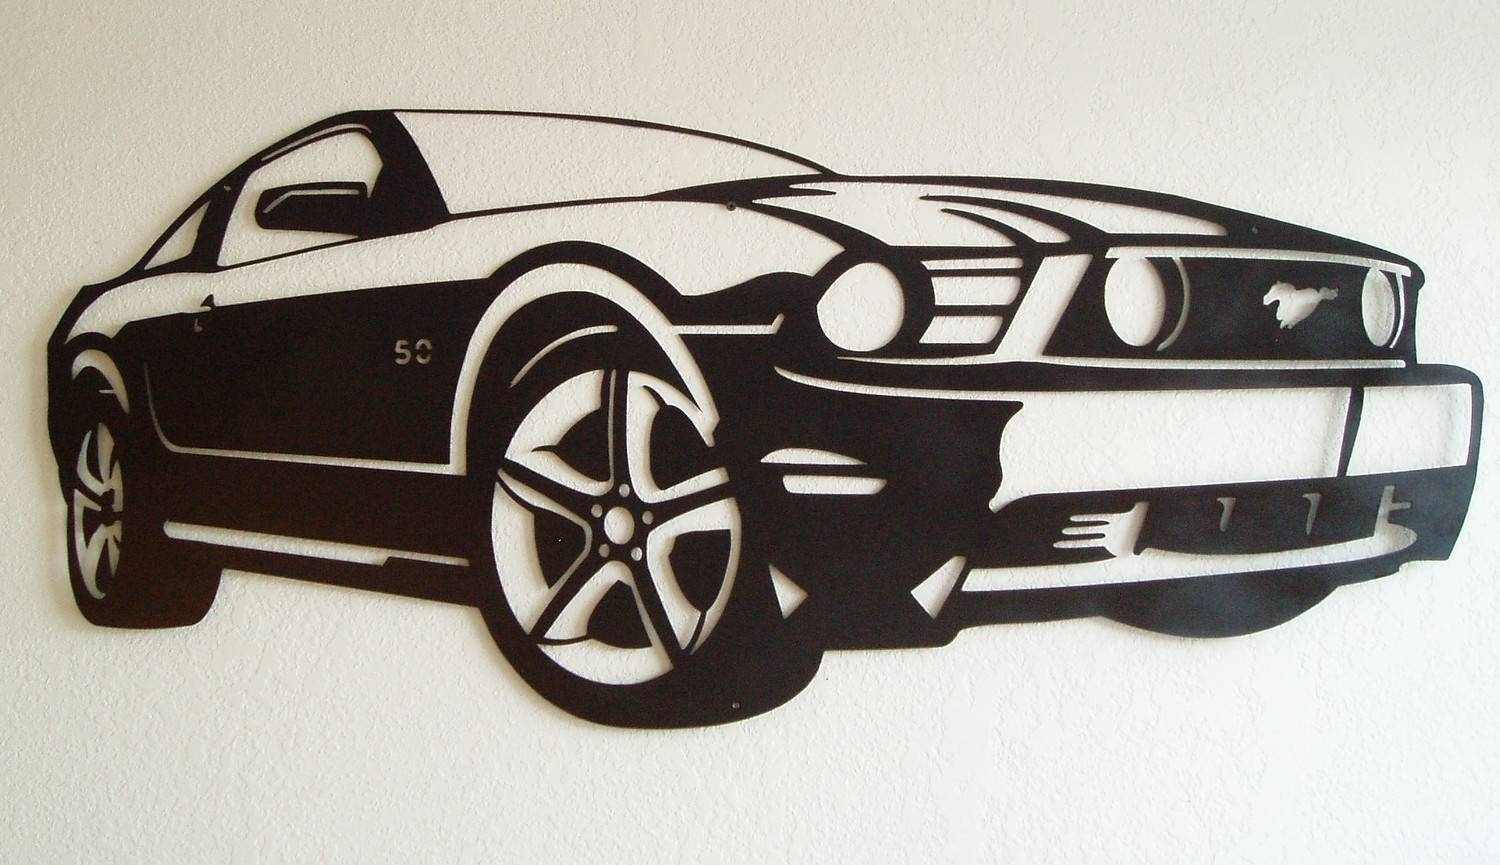 Ford Mustang Metal Wall Art With Regard To Most Recent Ford Mustang Metal Wall Art (View 1 of 20)